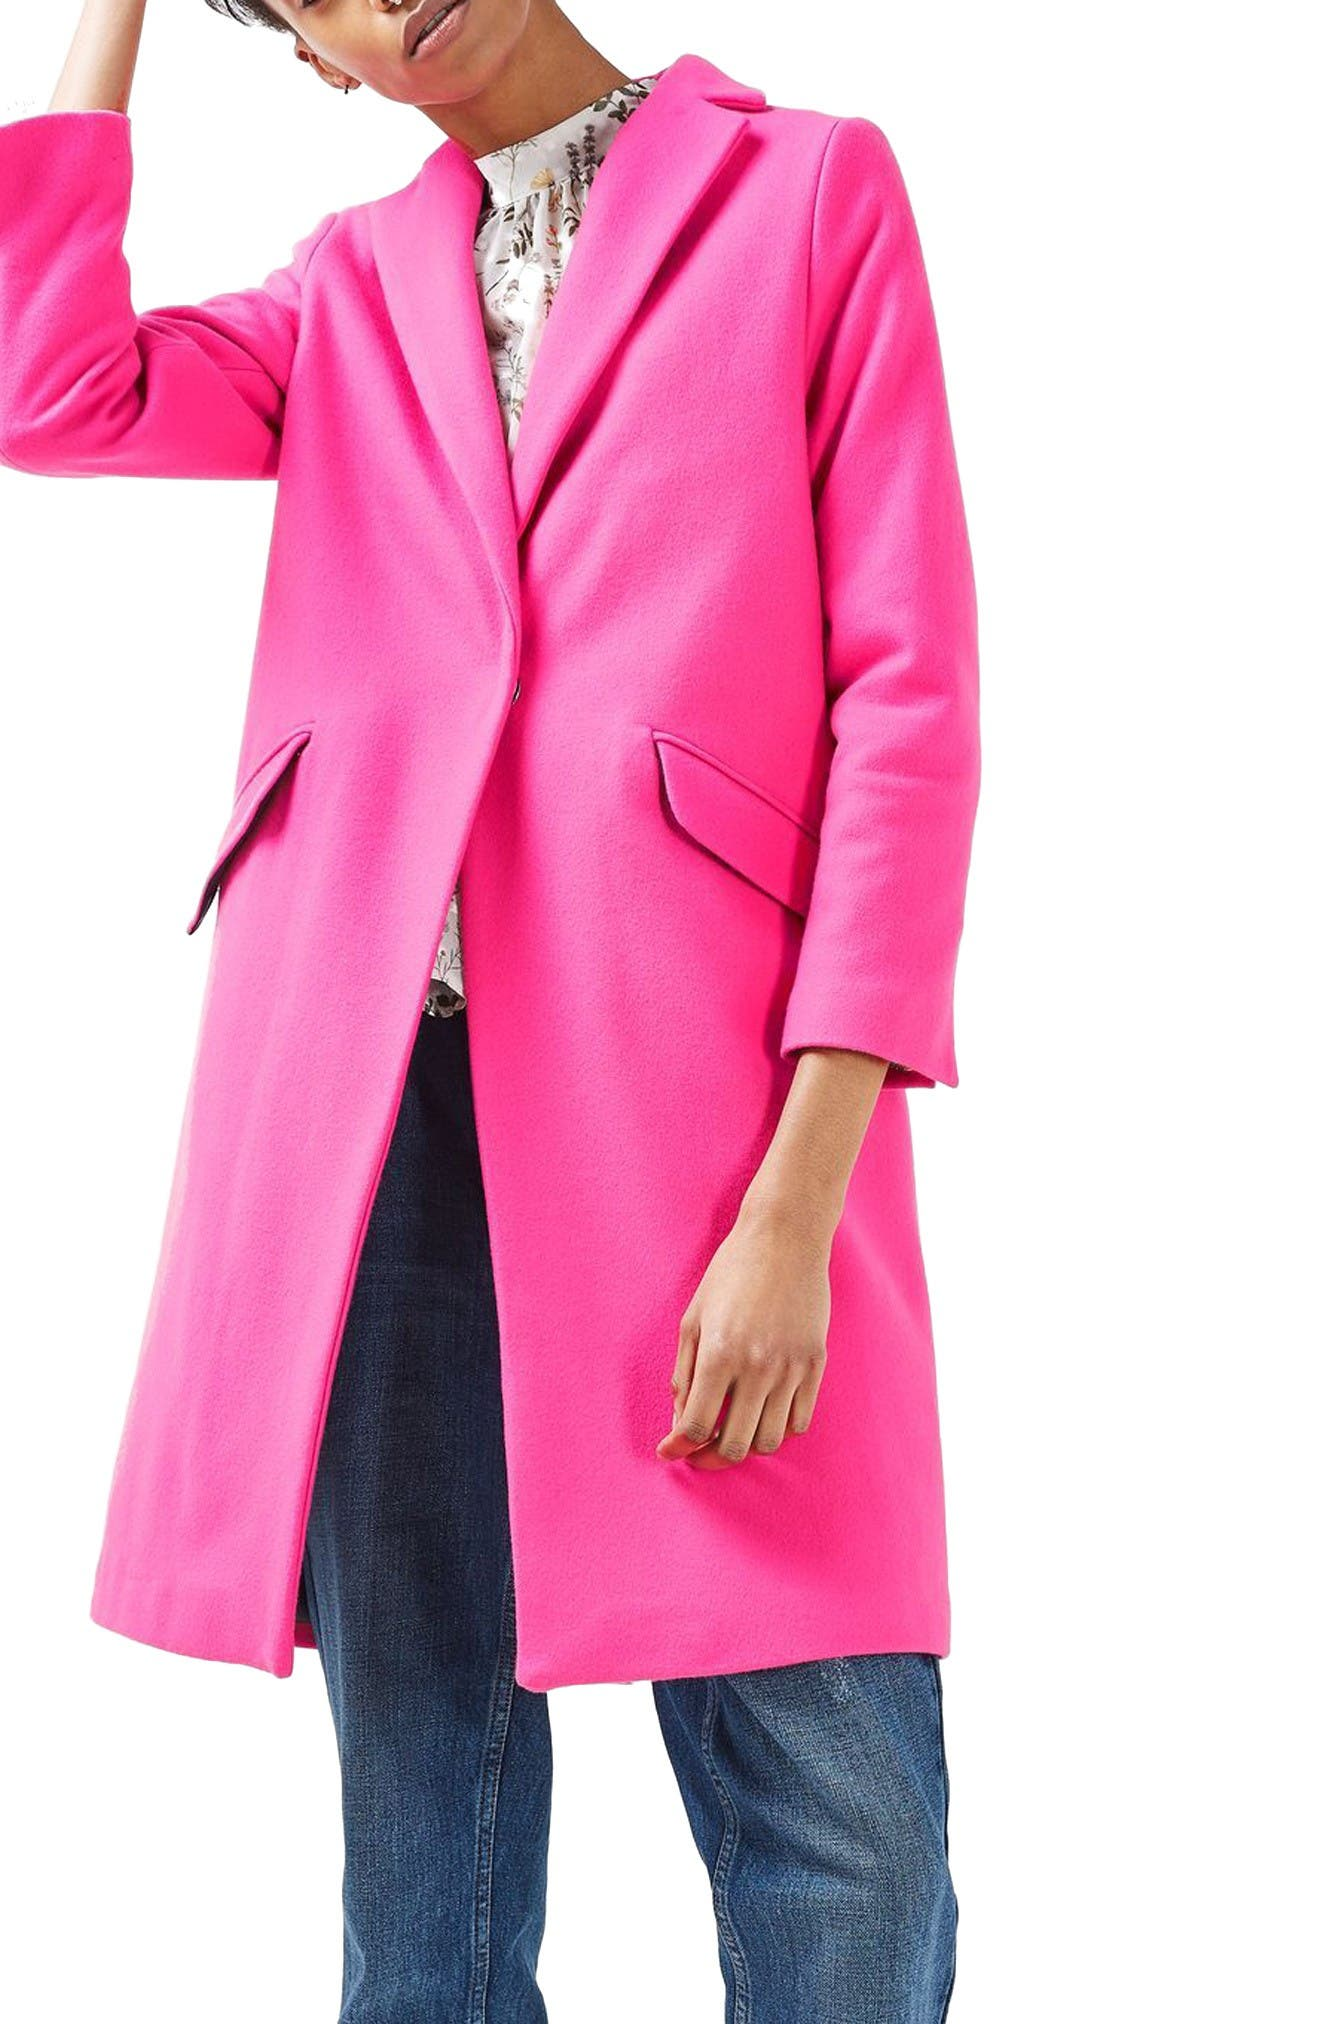 Alternate Image 1 Selected - Topshop Neon Wool Blend Coat (Petite)